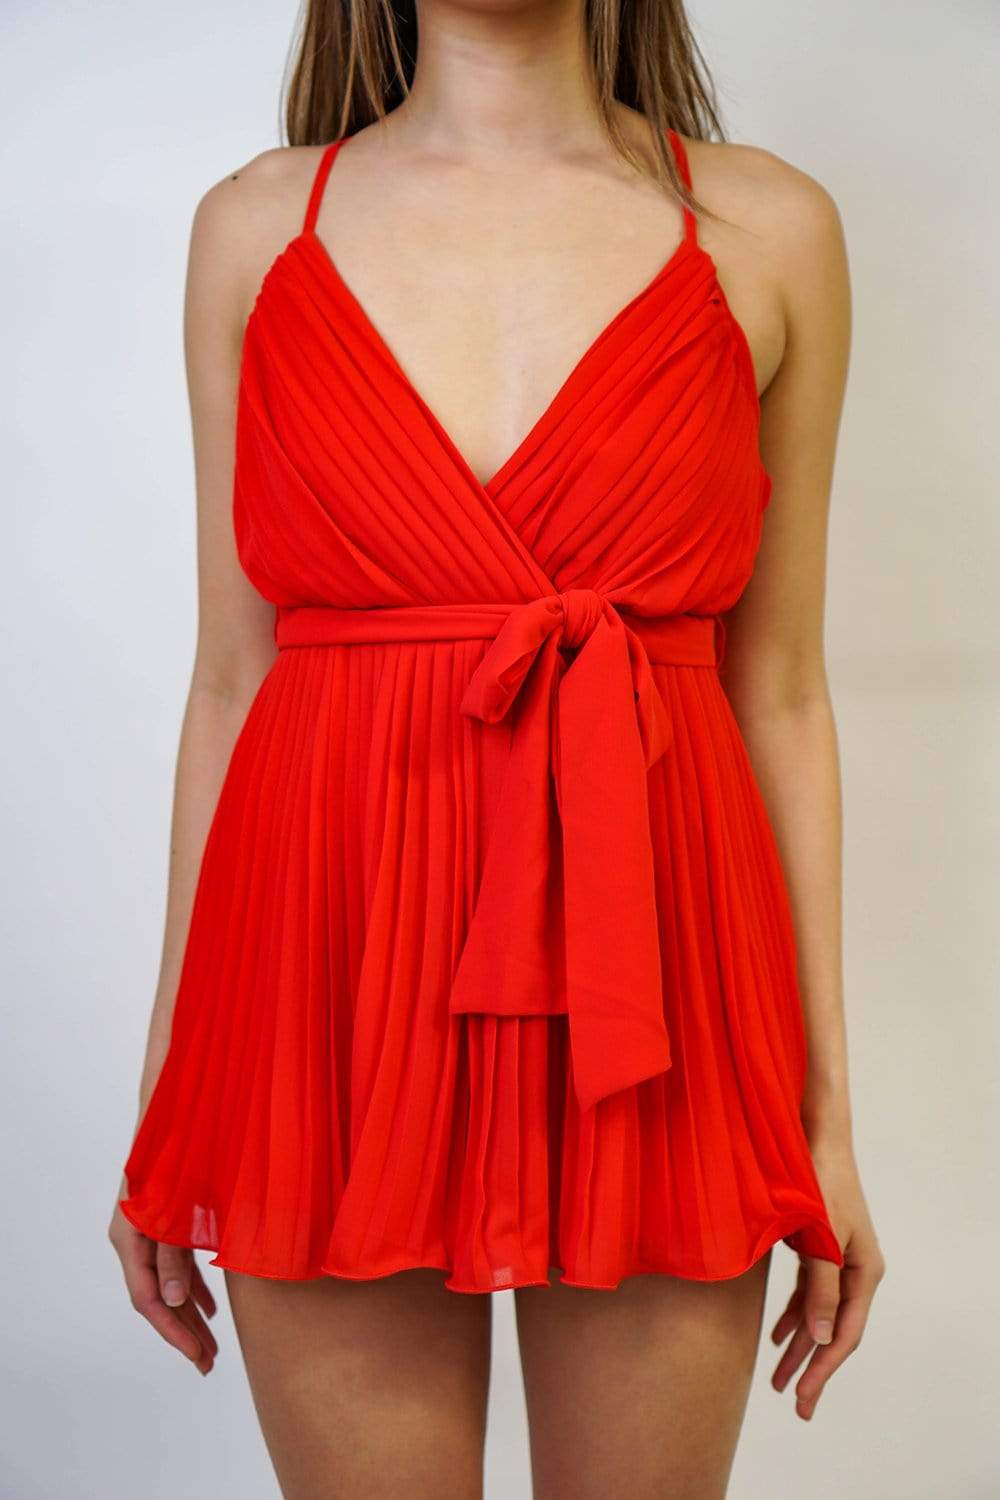 ROMPER Pleated Wire Romper Red - Chloe Dao